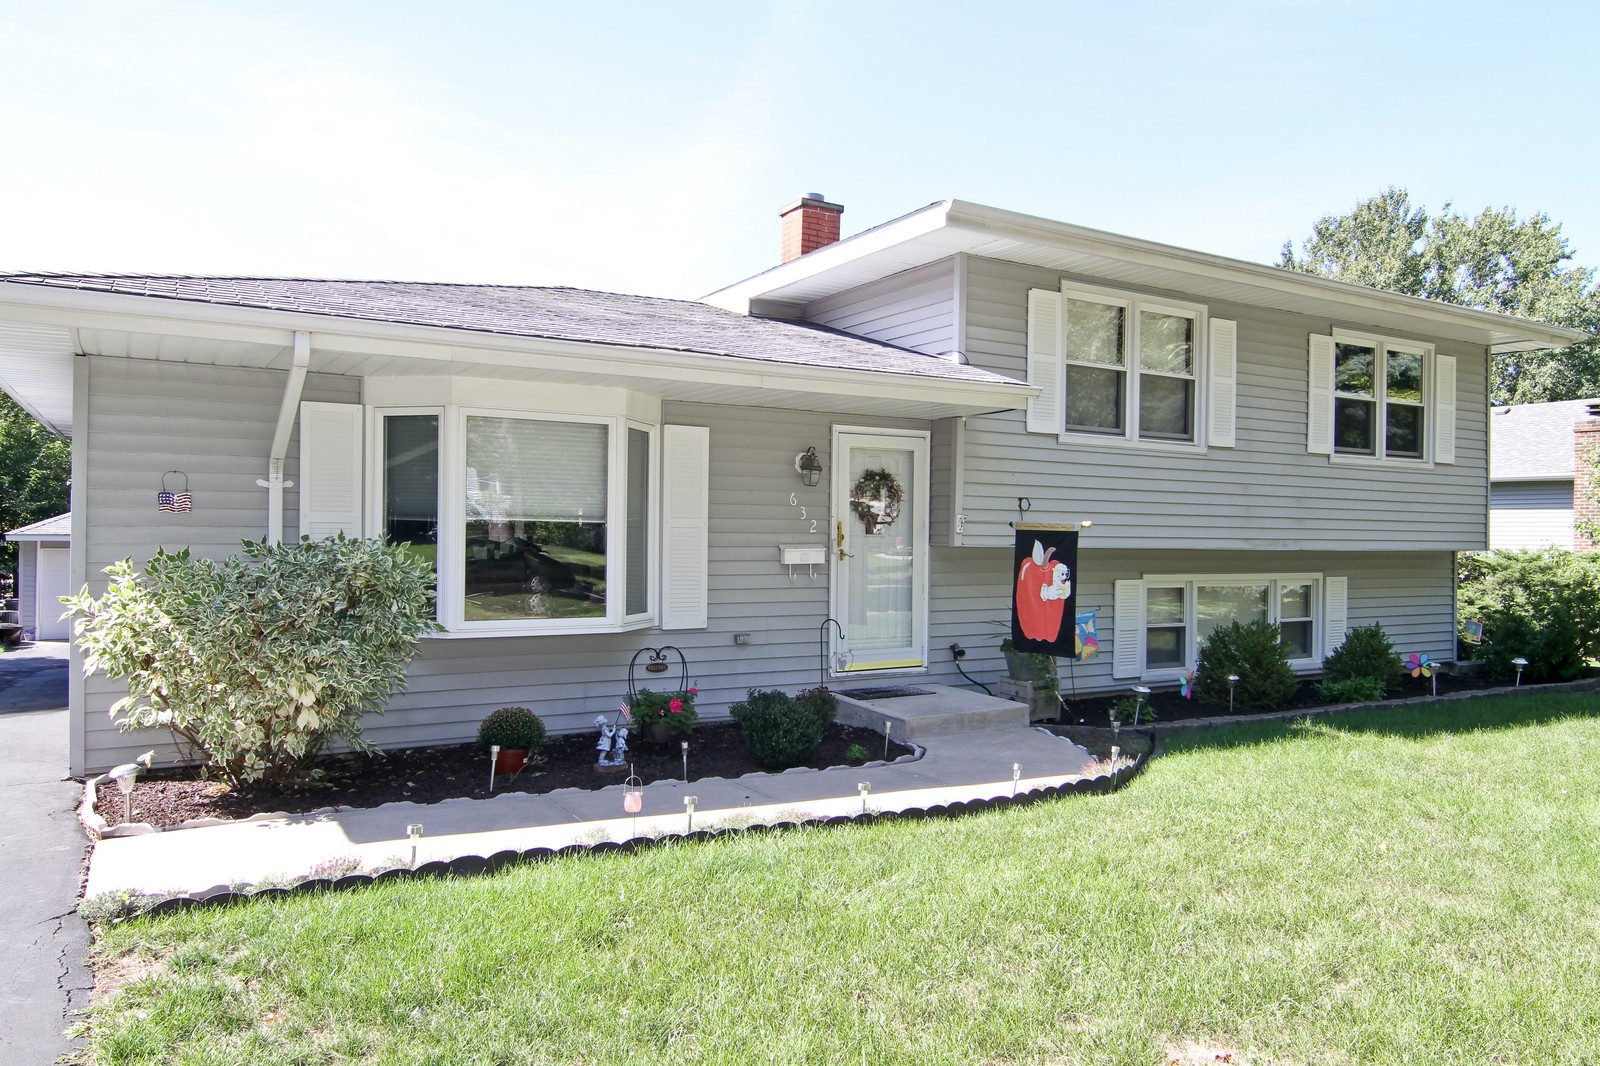 Real Estate Photography - 632 S. Lalonde Ave, Lombard, IL, 60148 - Front View